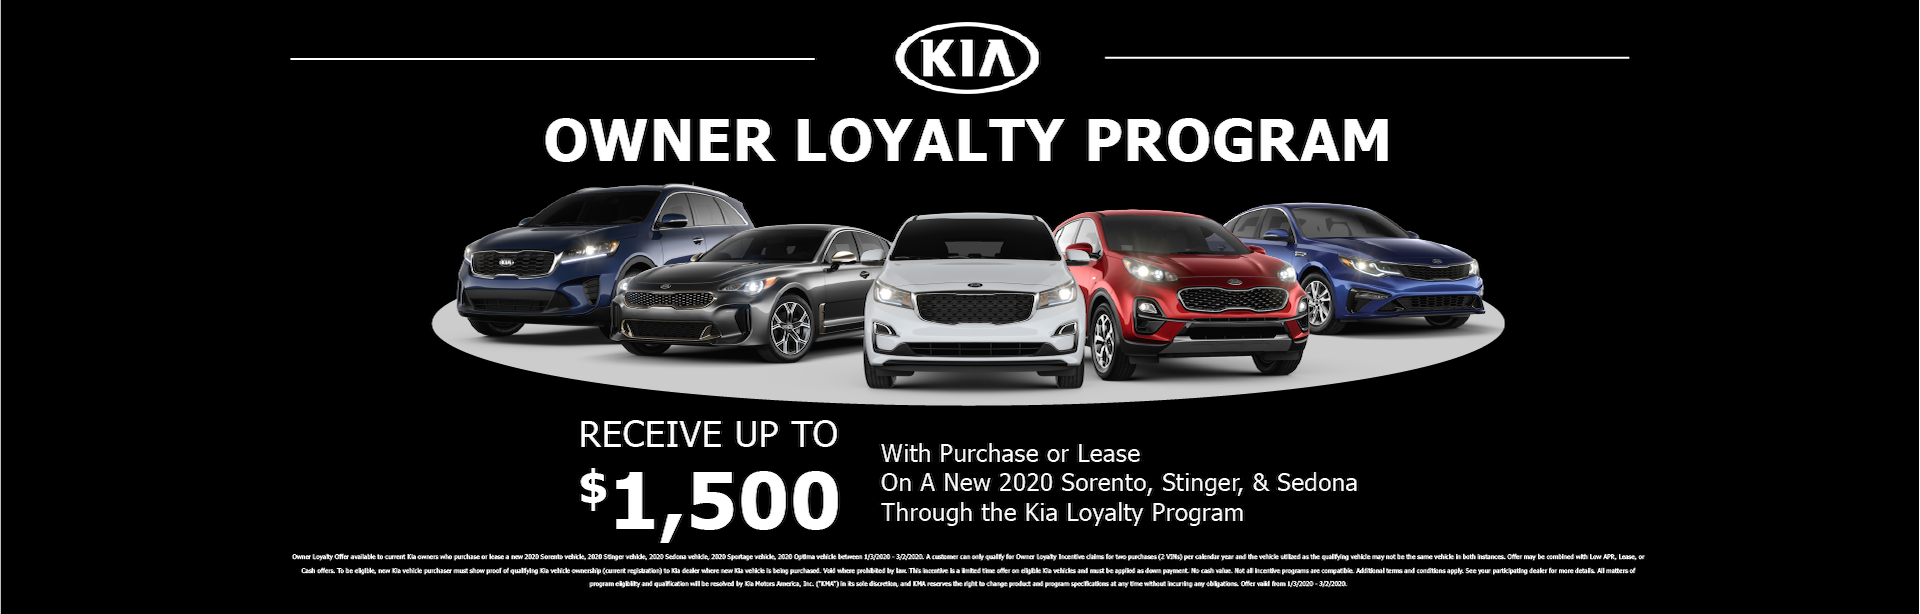 Owner Loyalty Program 202005